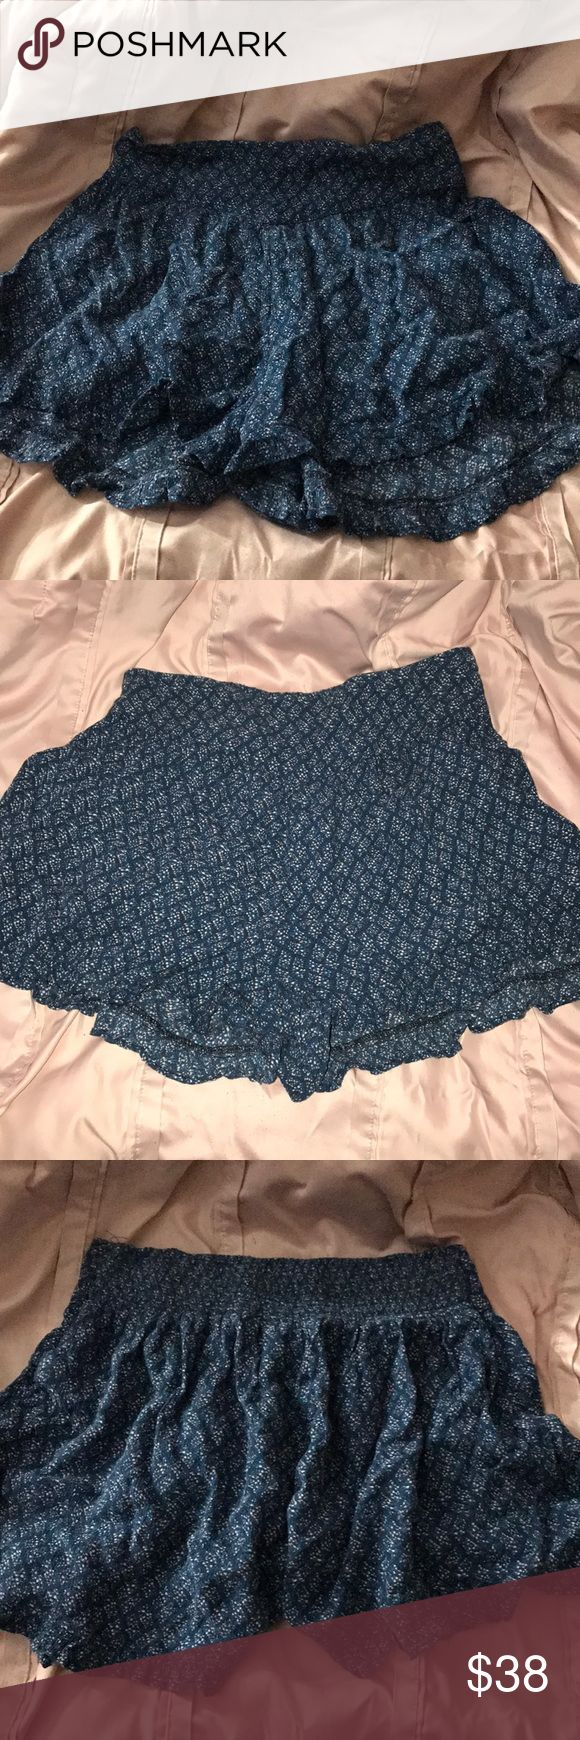 Adorable American Eagle Flowy Shorts! these shorts and so comfortable and even makes you look a little dressed up! They have an elastic band so they are stretchy! Also they are so flowy they can pass as a skirt while you are perfectly comfortable! they are in amazing condition!:) American Eagle Outfitters Shorts